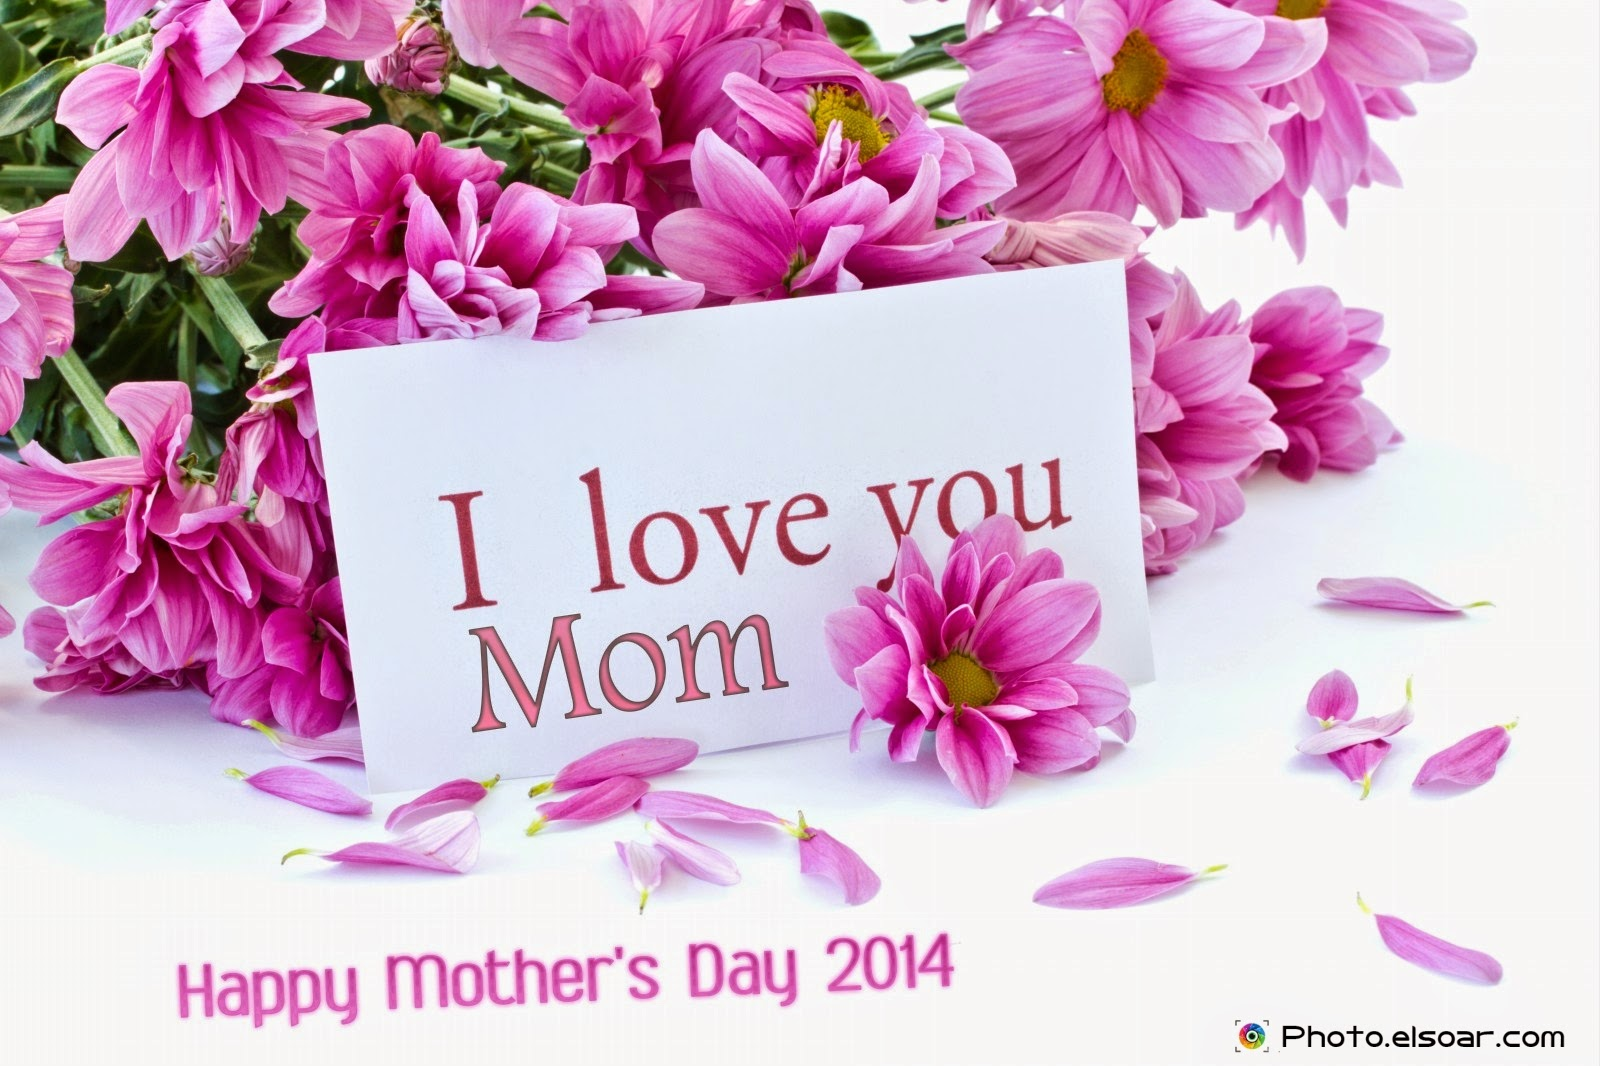 Happy Mother's Day May 11 2014 New Wallpapers And